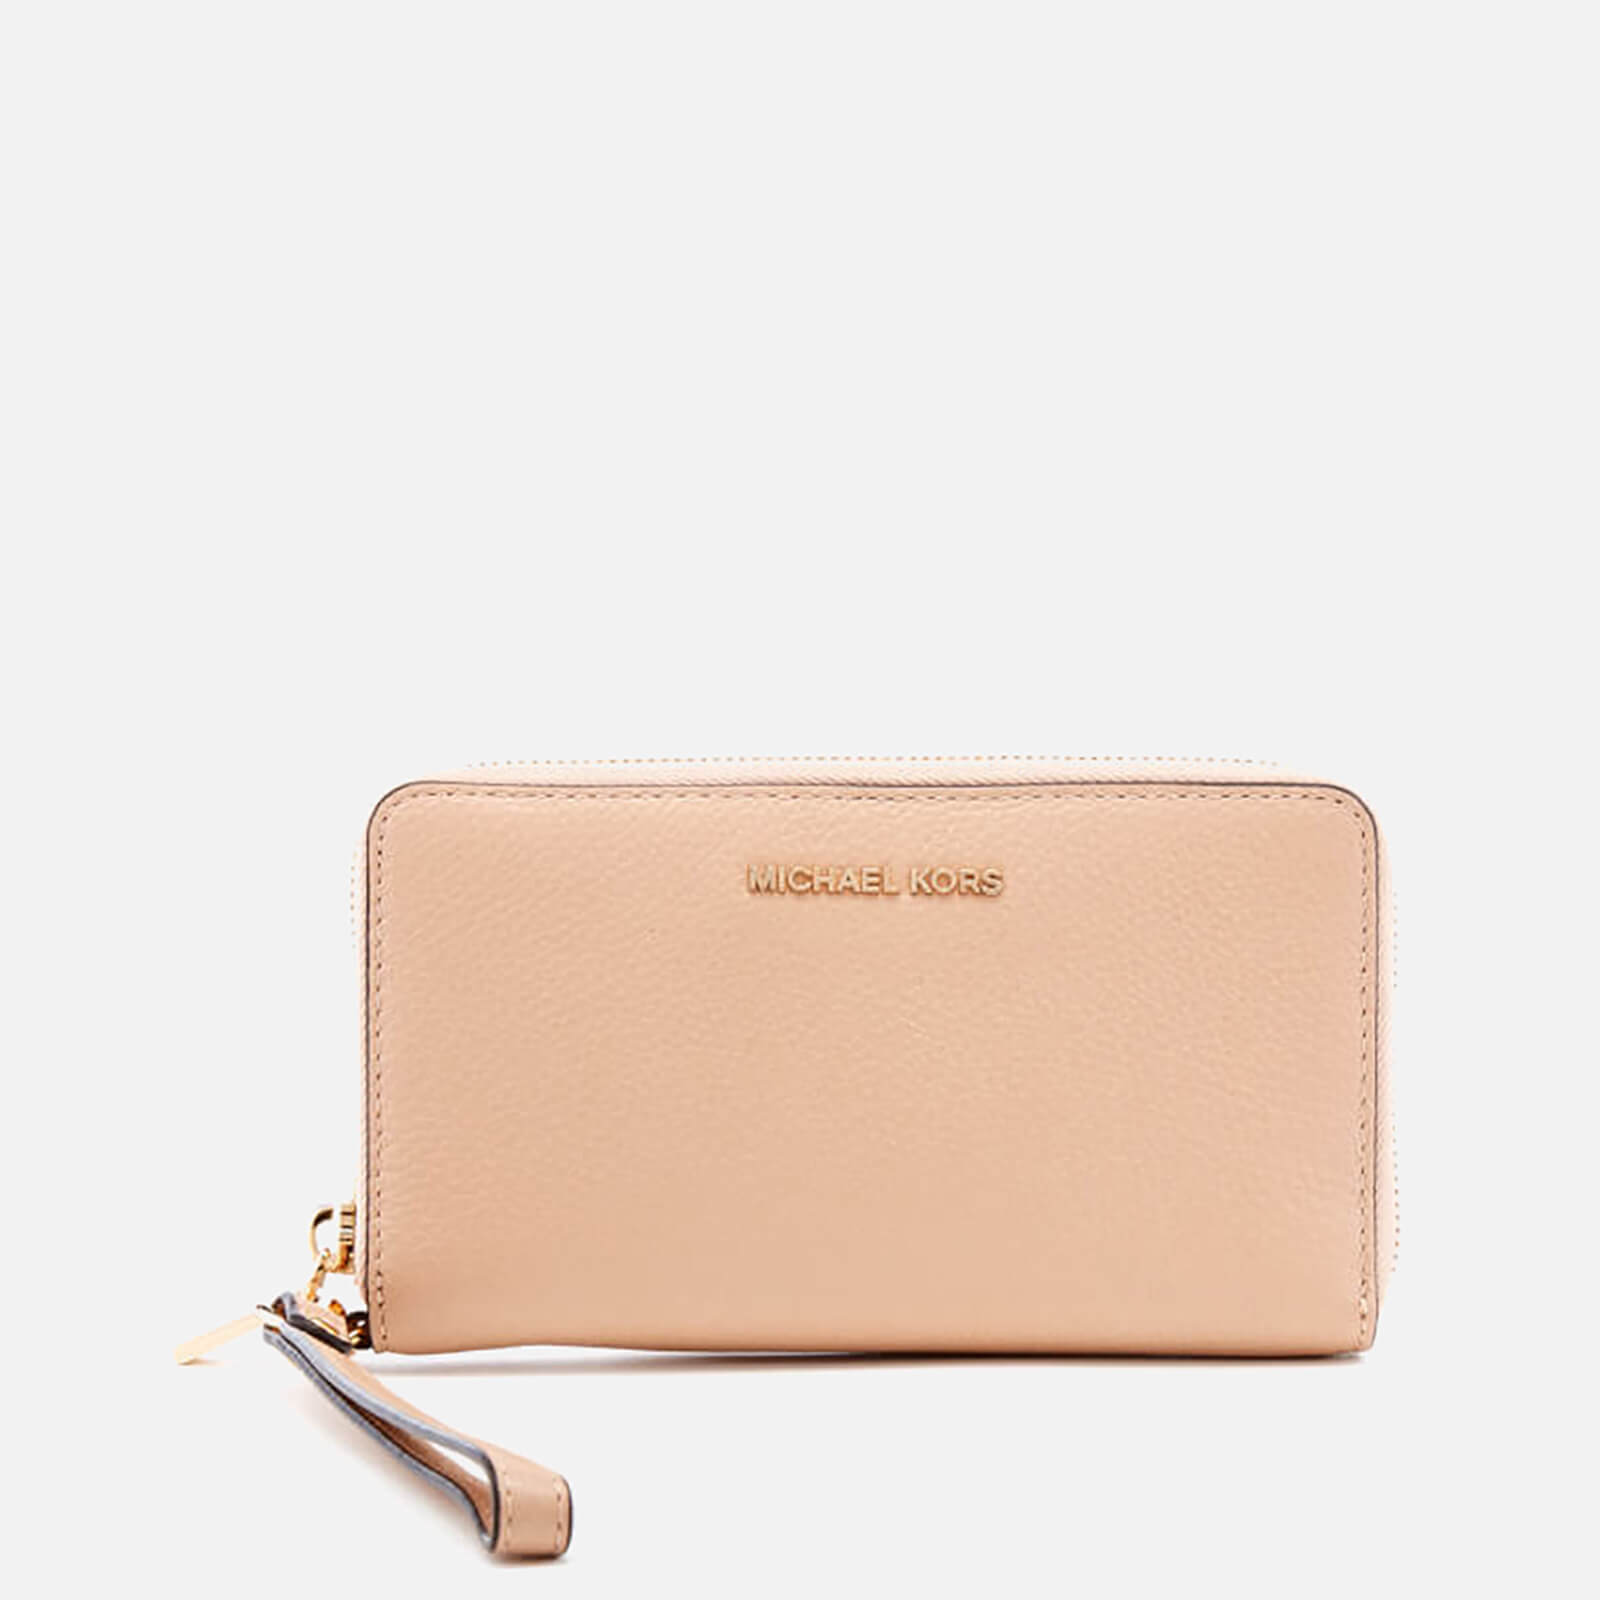 f23436434a10 MICHAEL MICHAEL KORS Women's Mercer Large Flat Multifunction Phone Purse -  Oyster - Free UK Delivery over £50